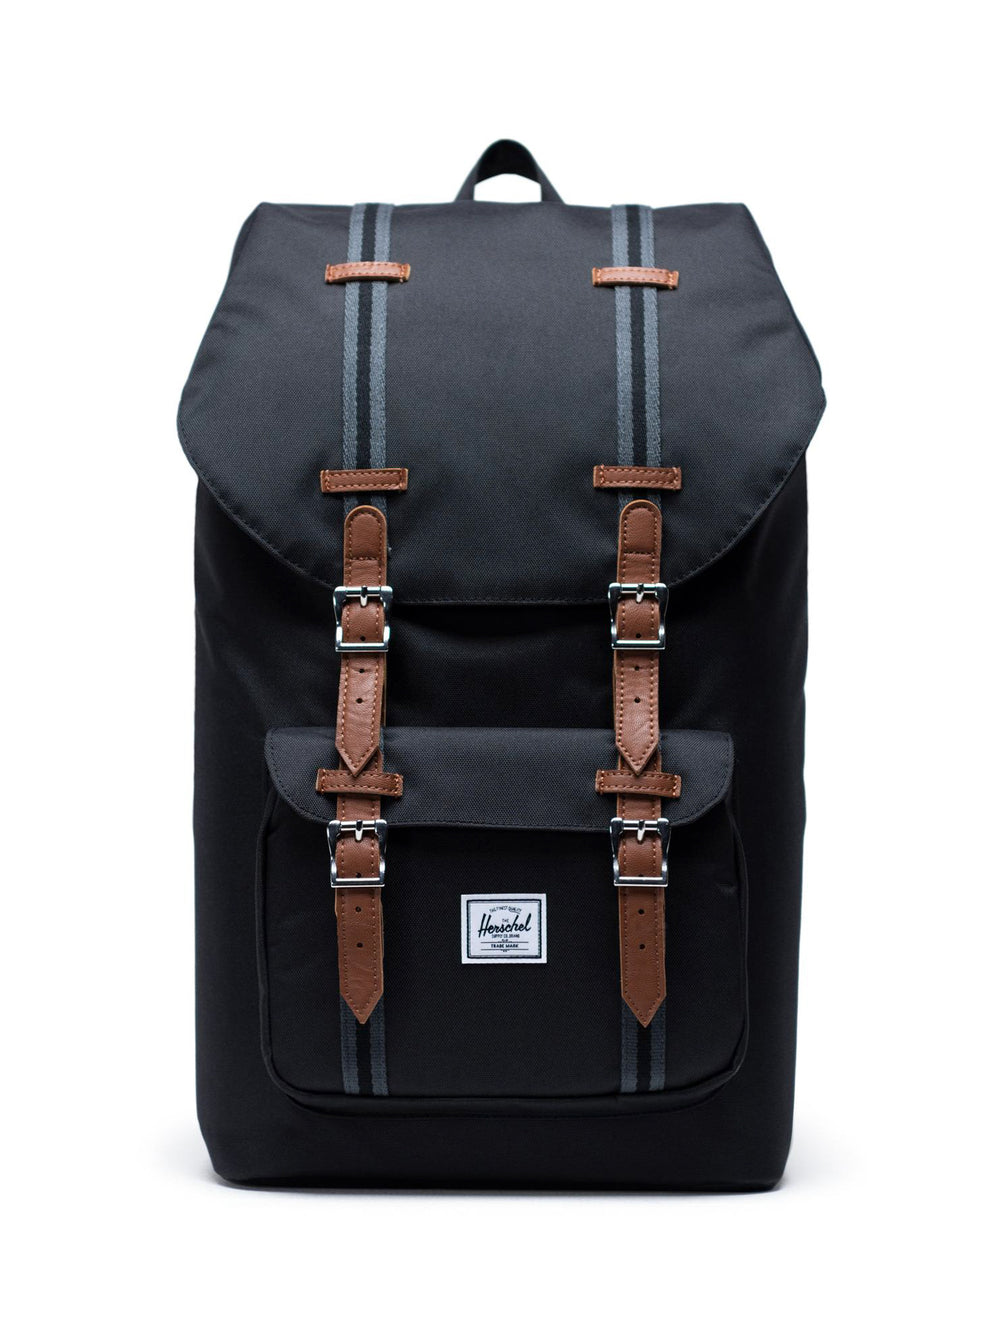 LITTLE AMERICA 25L - BLK/TAN